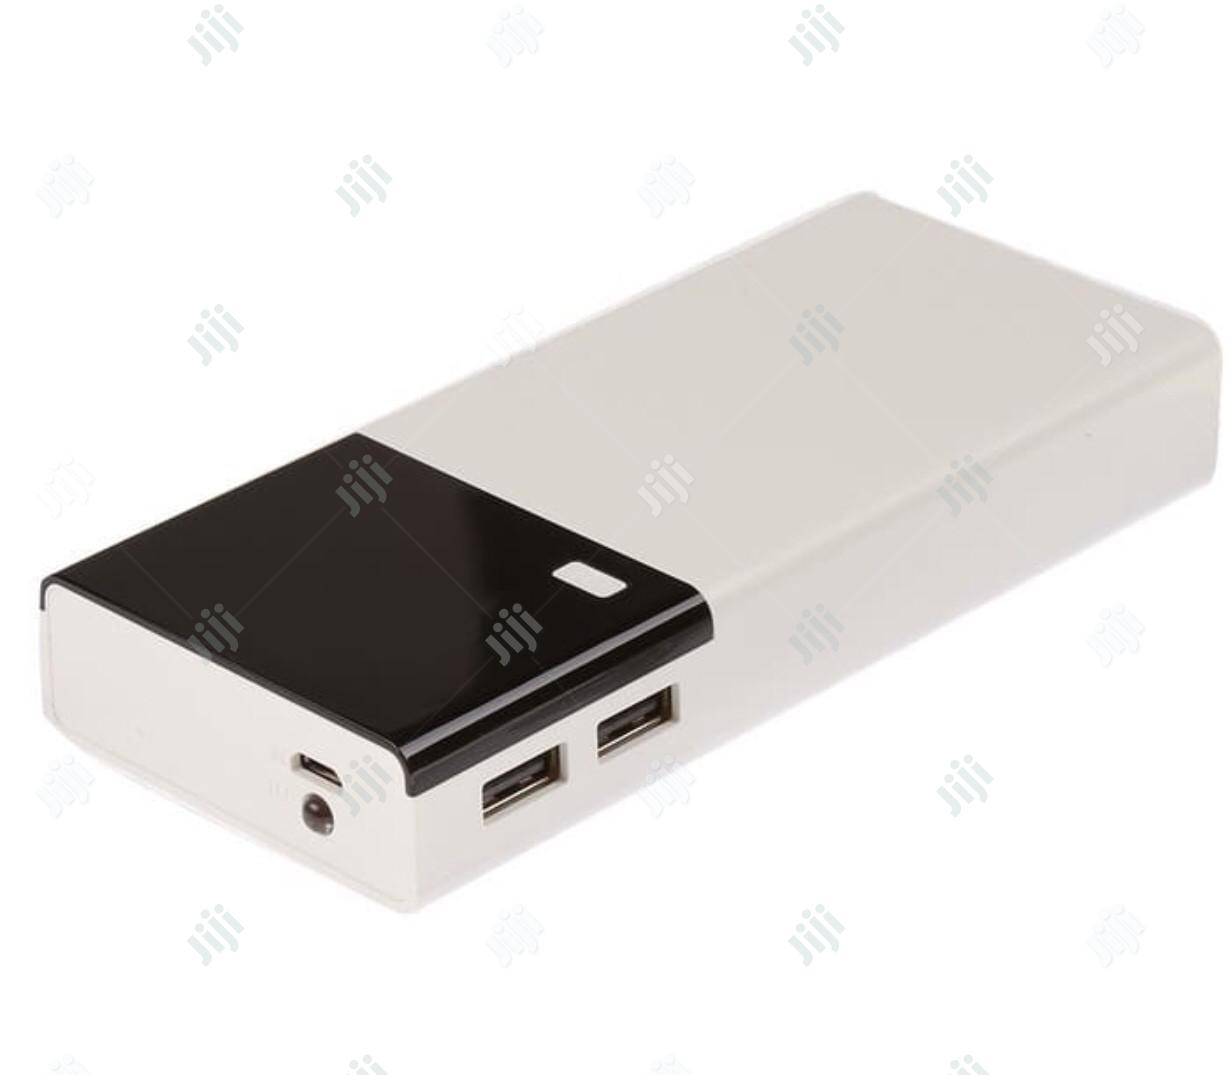 Smart Power Bank With Led